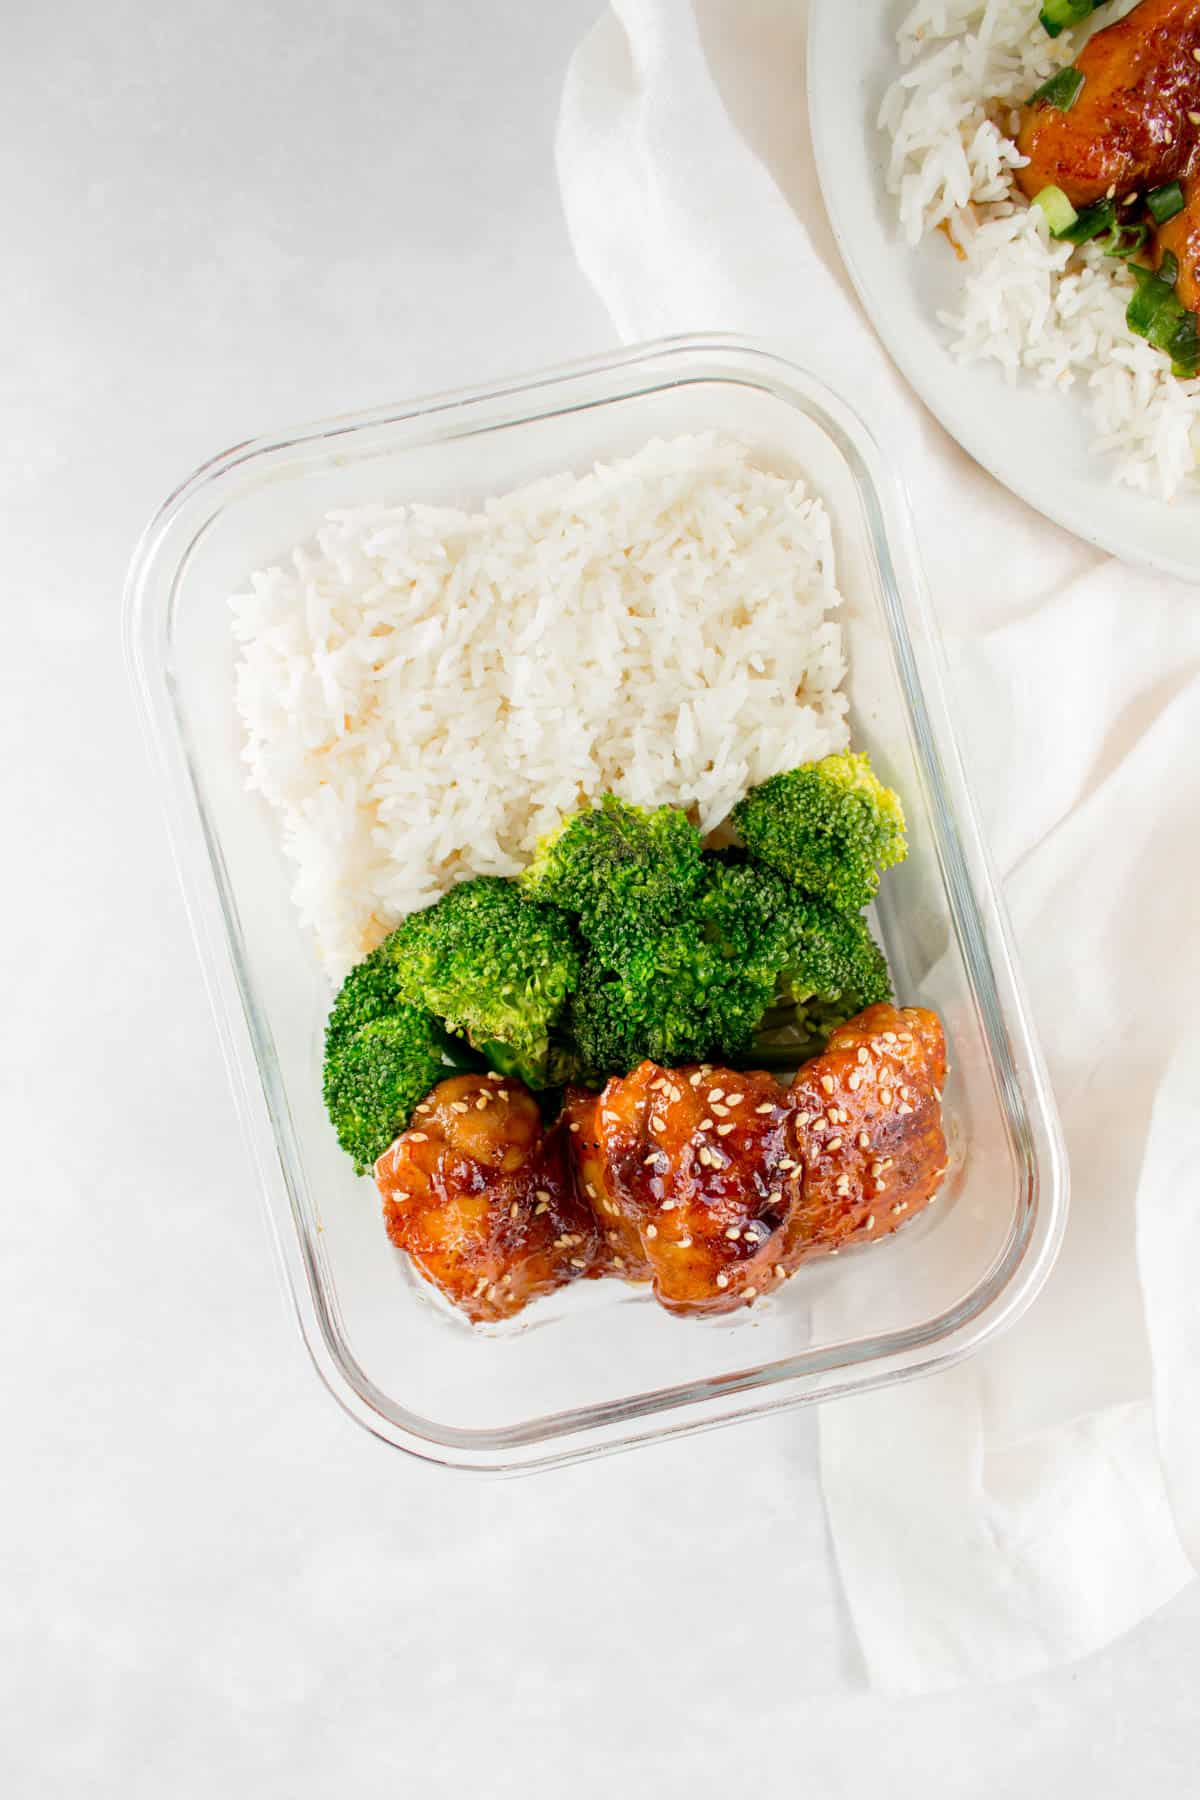 Meal prep container with orange honey glazed chicken thighs with broccoli and rice.